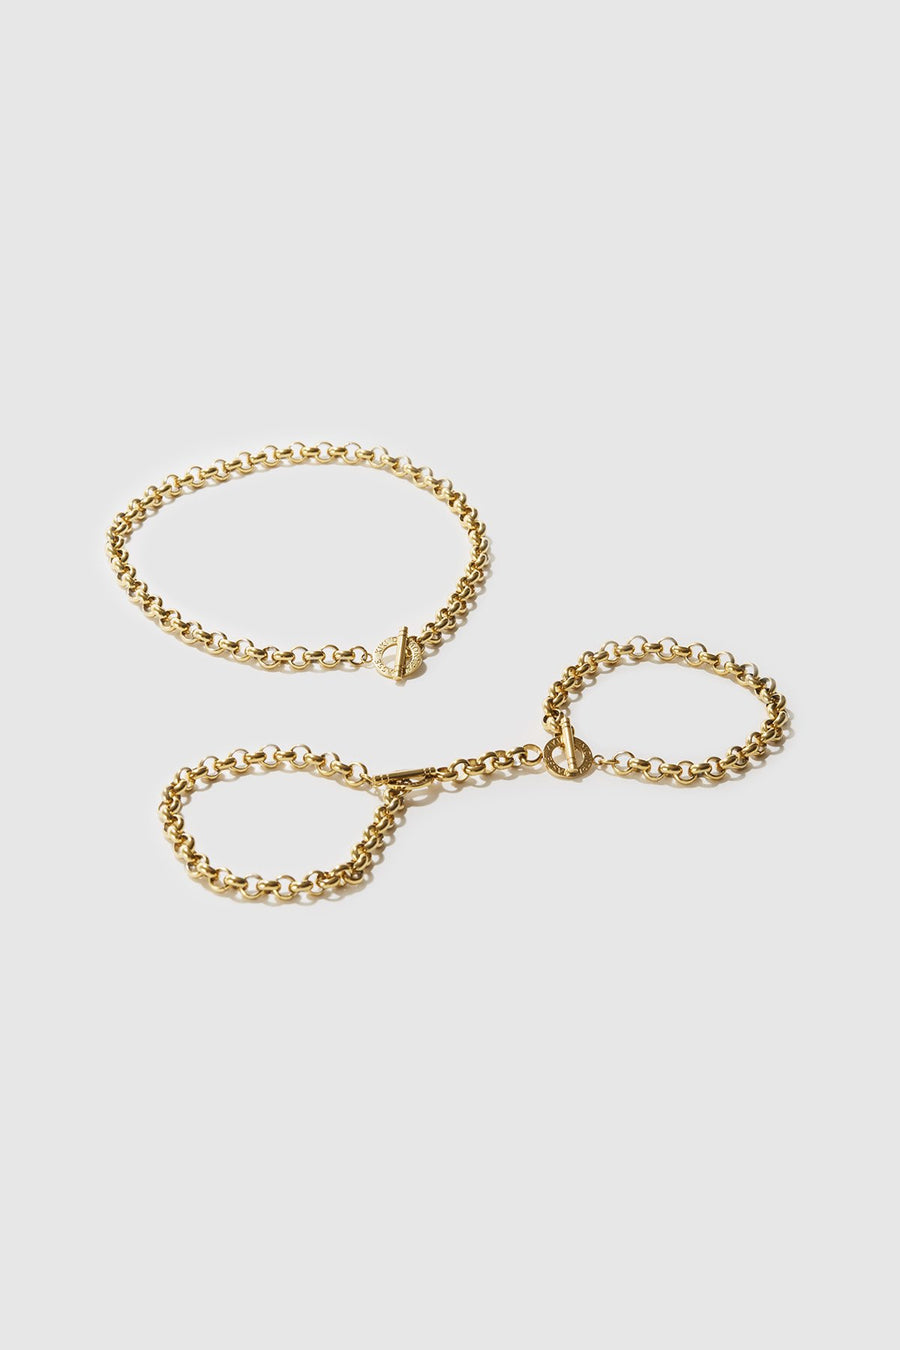 Handcuffs, 14k Gold - The Beach Bride by Chic Parisien, a destination for beach weddings, bachelorettes and honeymoons